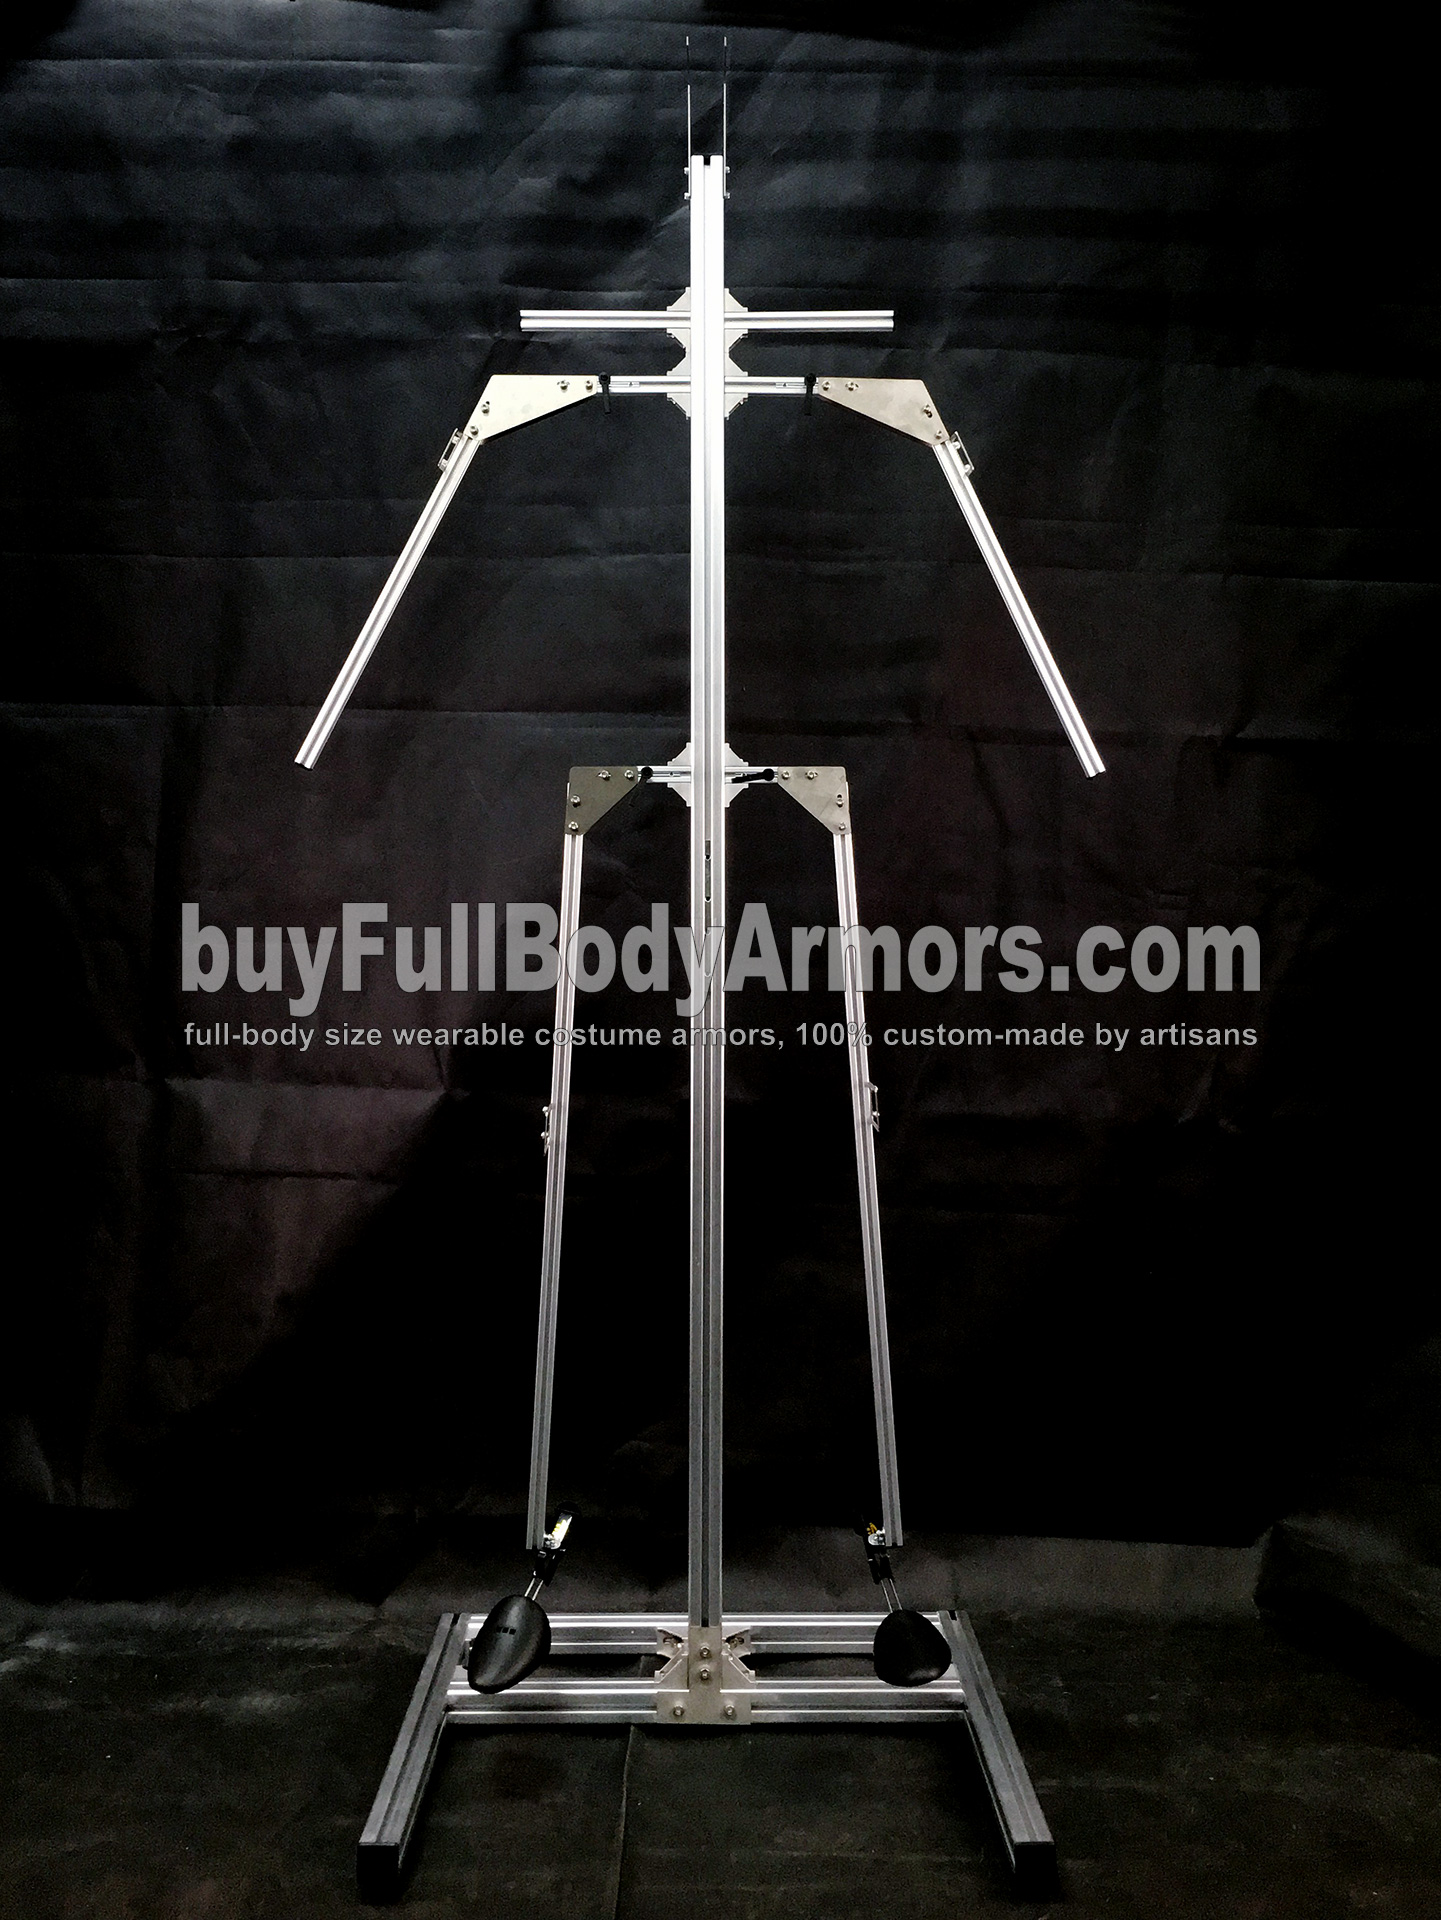 Universal Aluminium Alloy Support (UAAS) for All Our Armor Costumes is Available Now 1